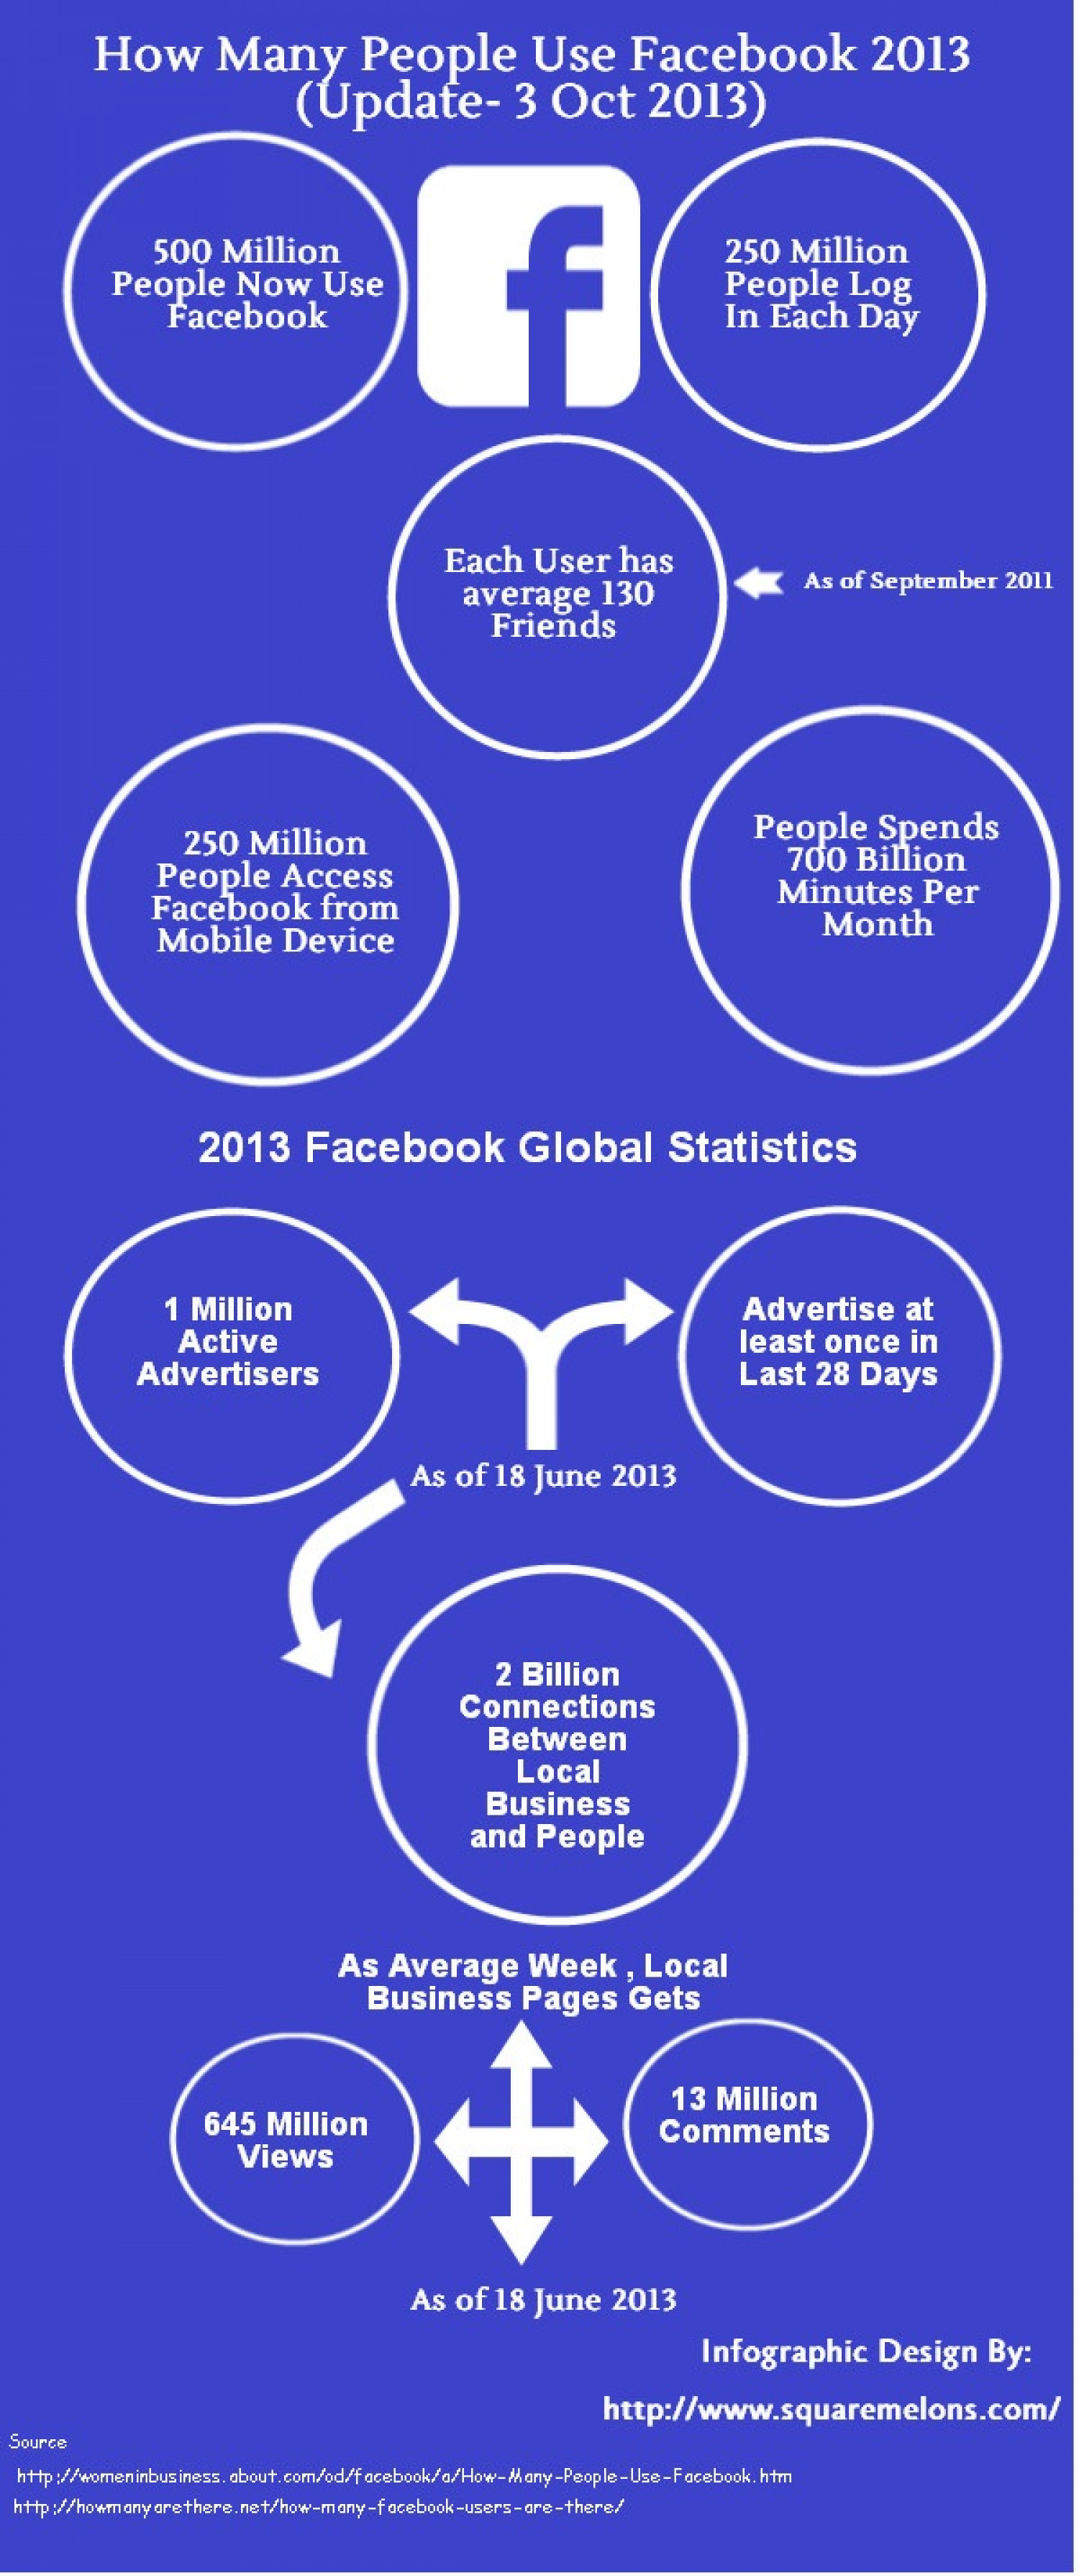 How Many People Use Facebook 2013 (Update- 3 October 2013) Infographic